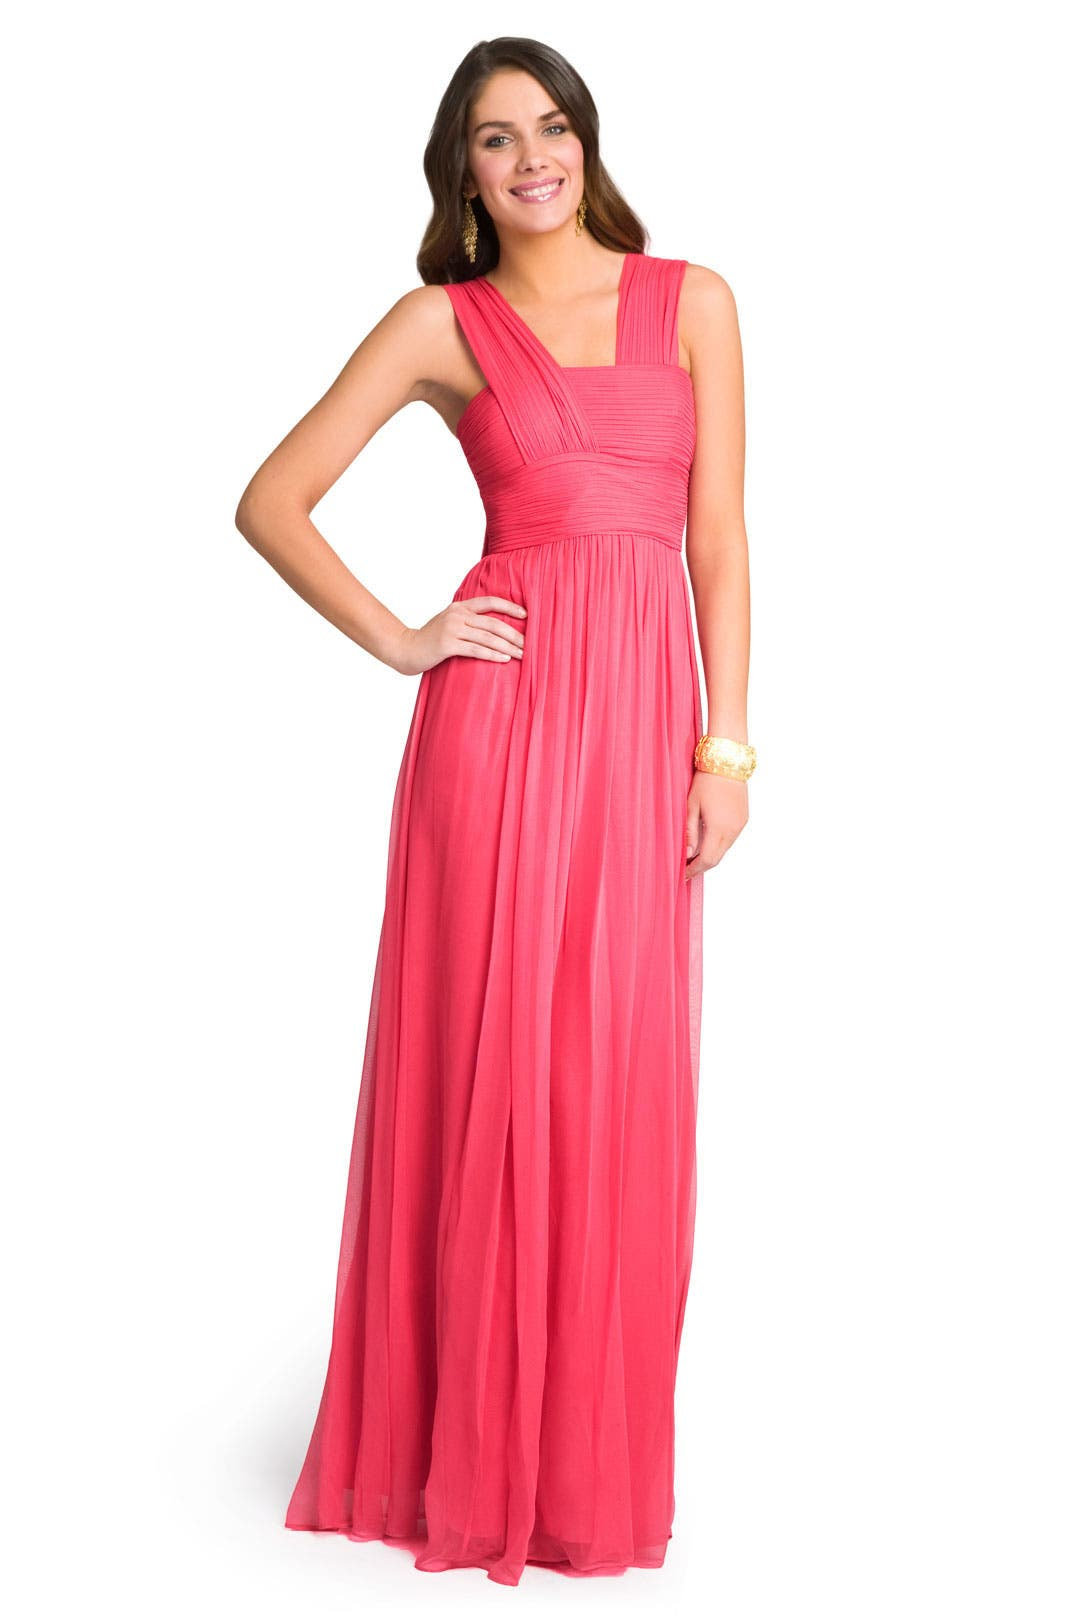 Bright Bodice Gown by Robert Rodriguez Black Label